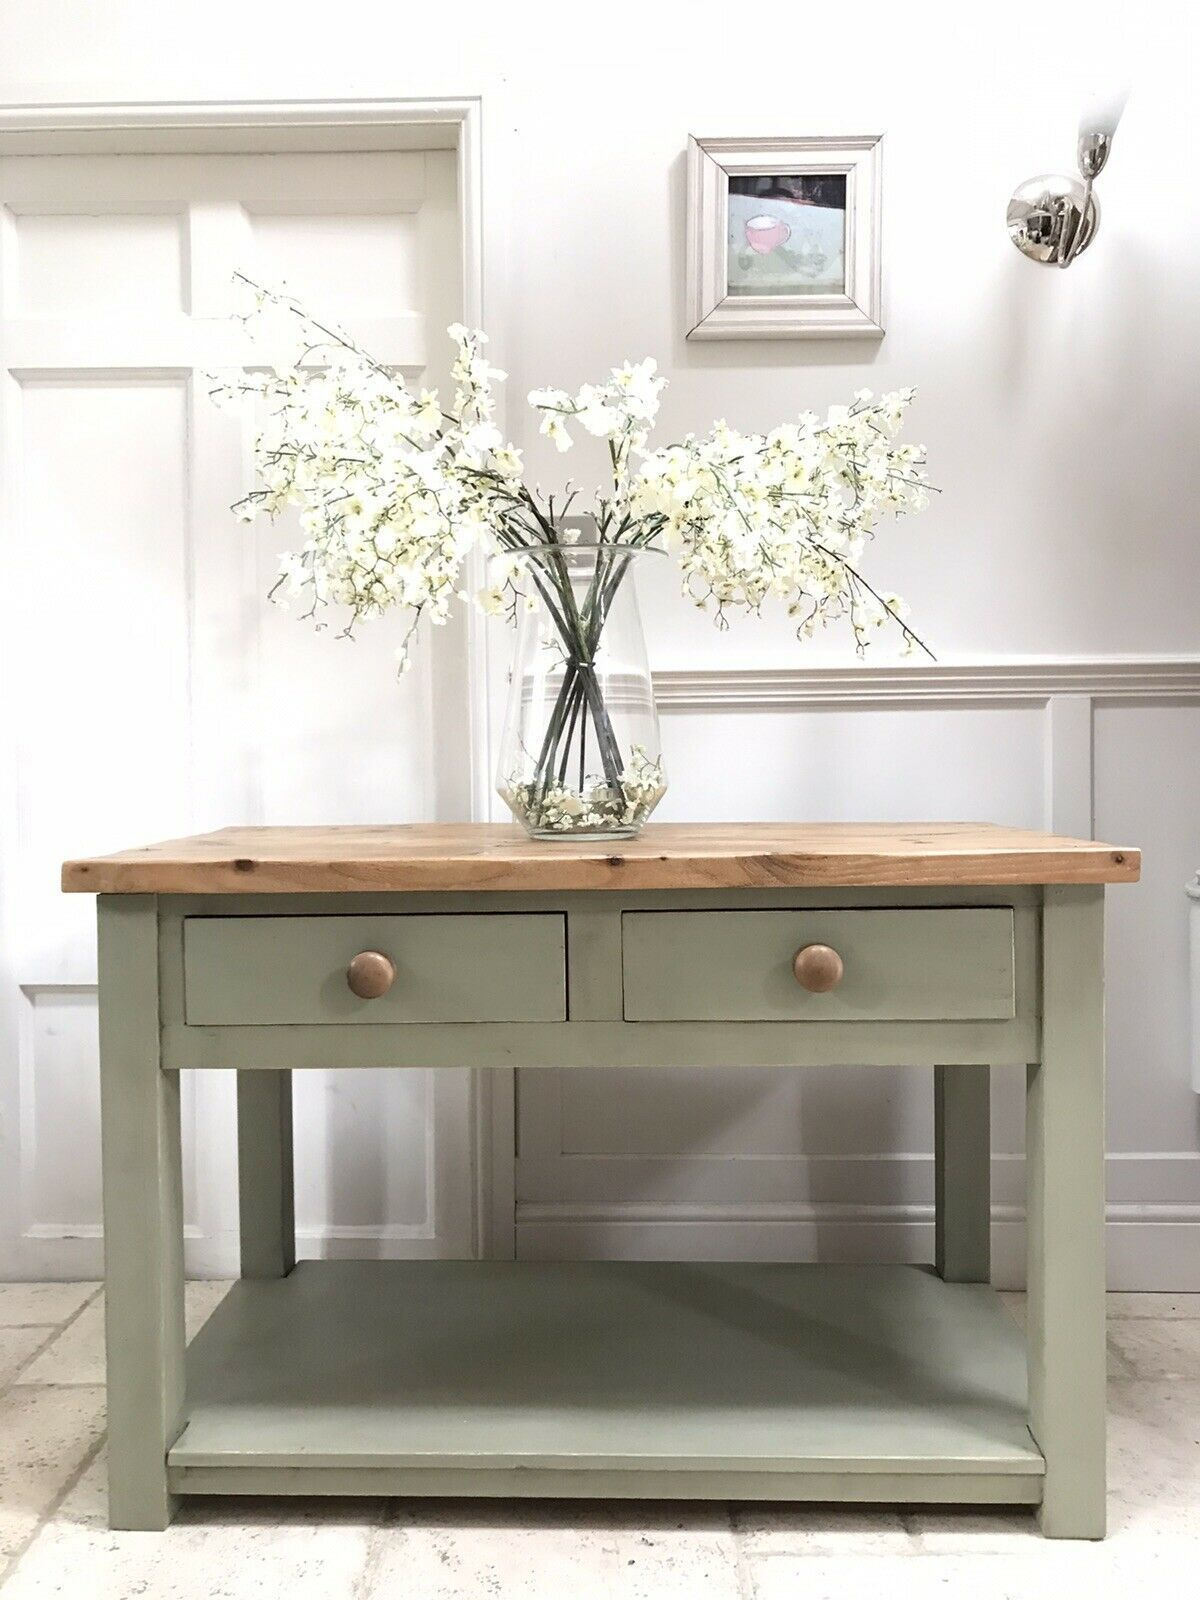 Painted Rustic Solid Pine Green Kitchen Island Sideboard Server Console Table In 2020 Green Kitchen Island Green Kitchen Console Table Decorating